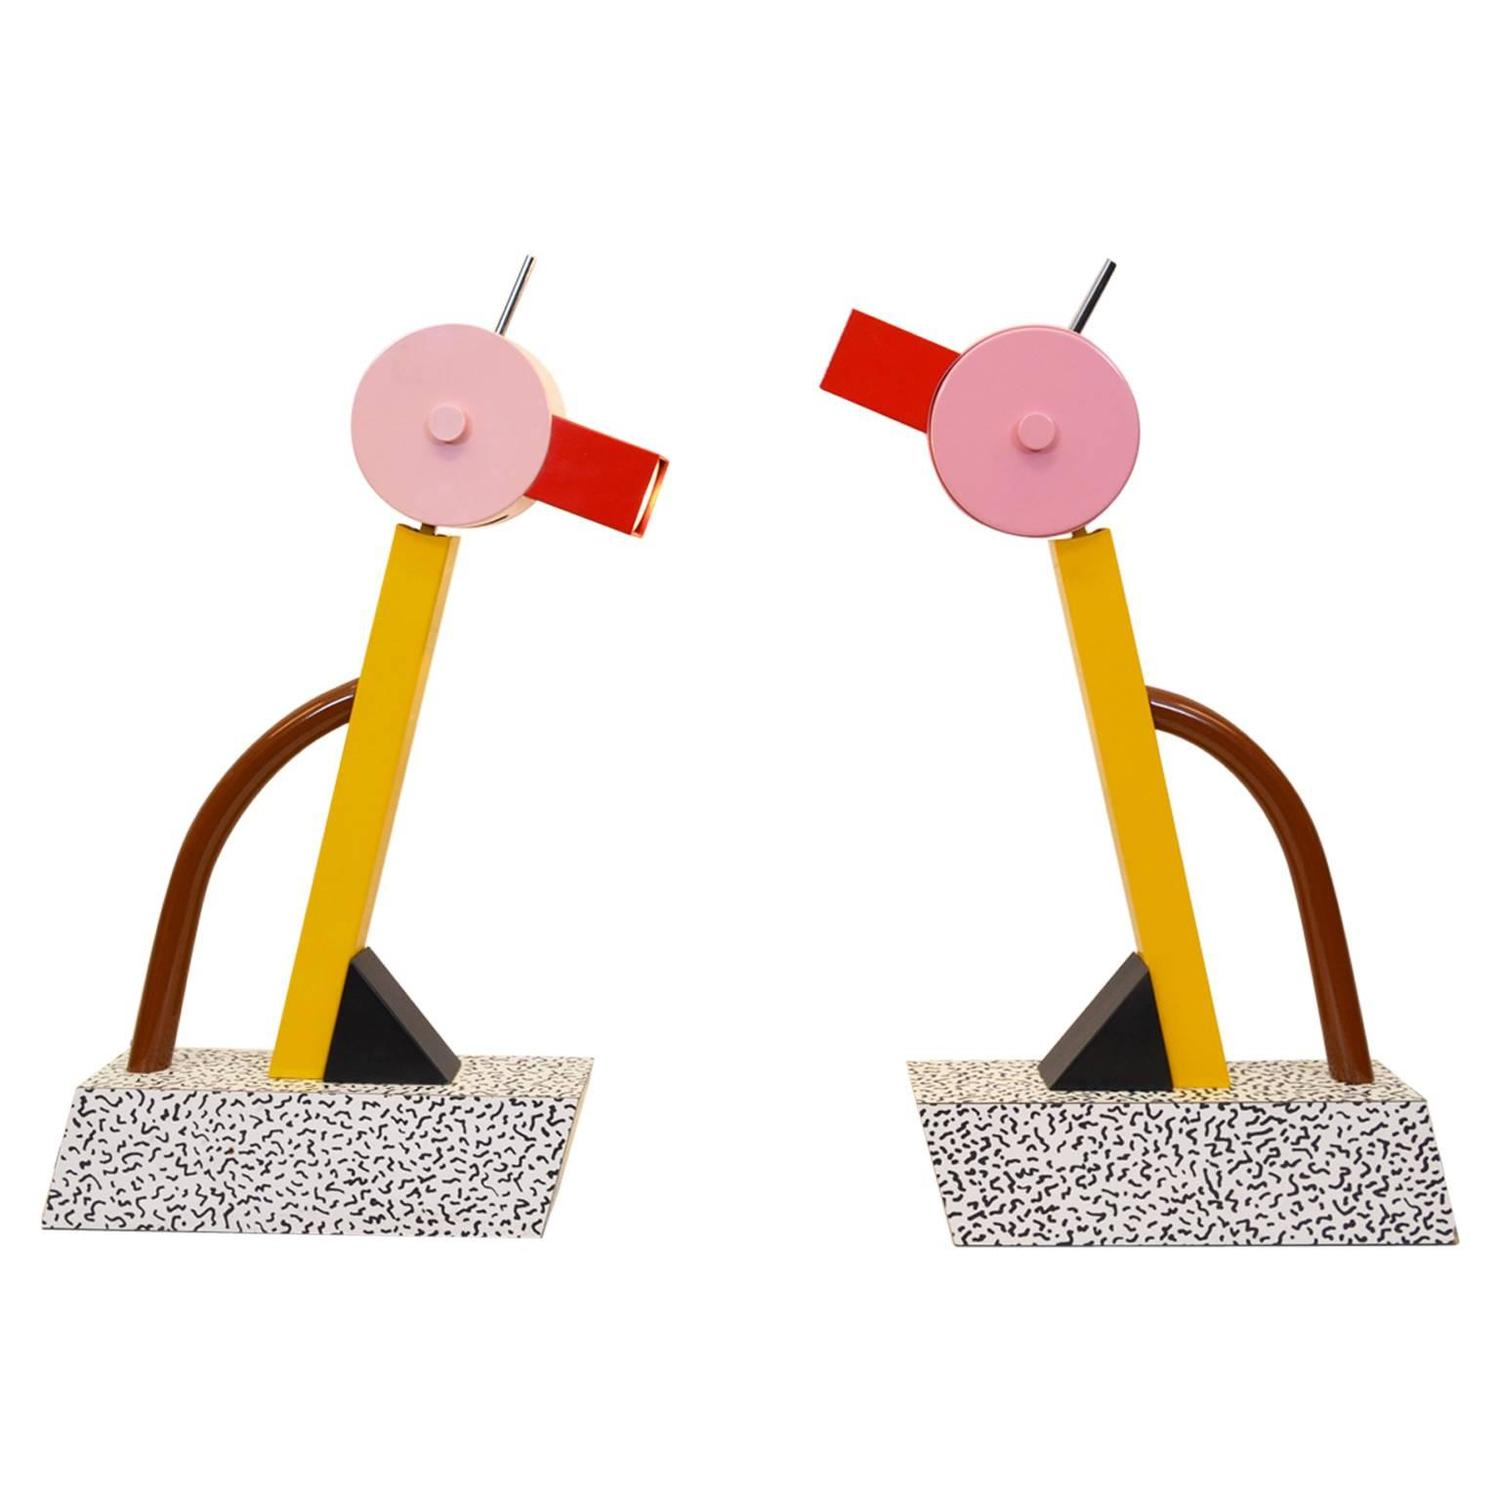 Table lamp tahiti by ettore sottsass for sale at 1stdibs for Memphis sottsass